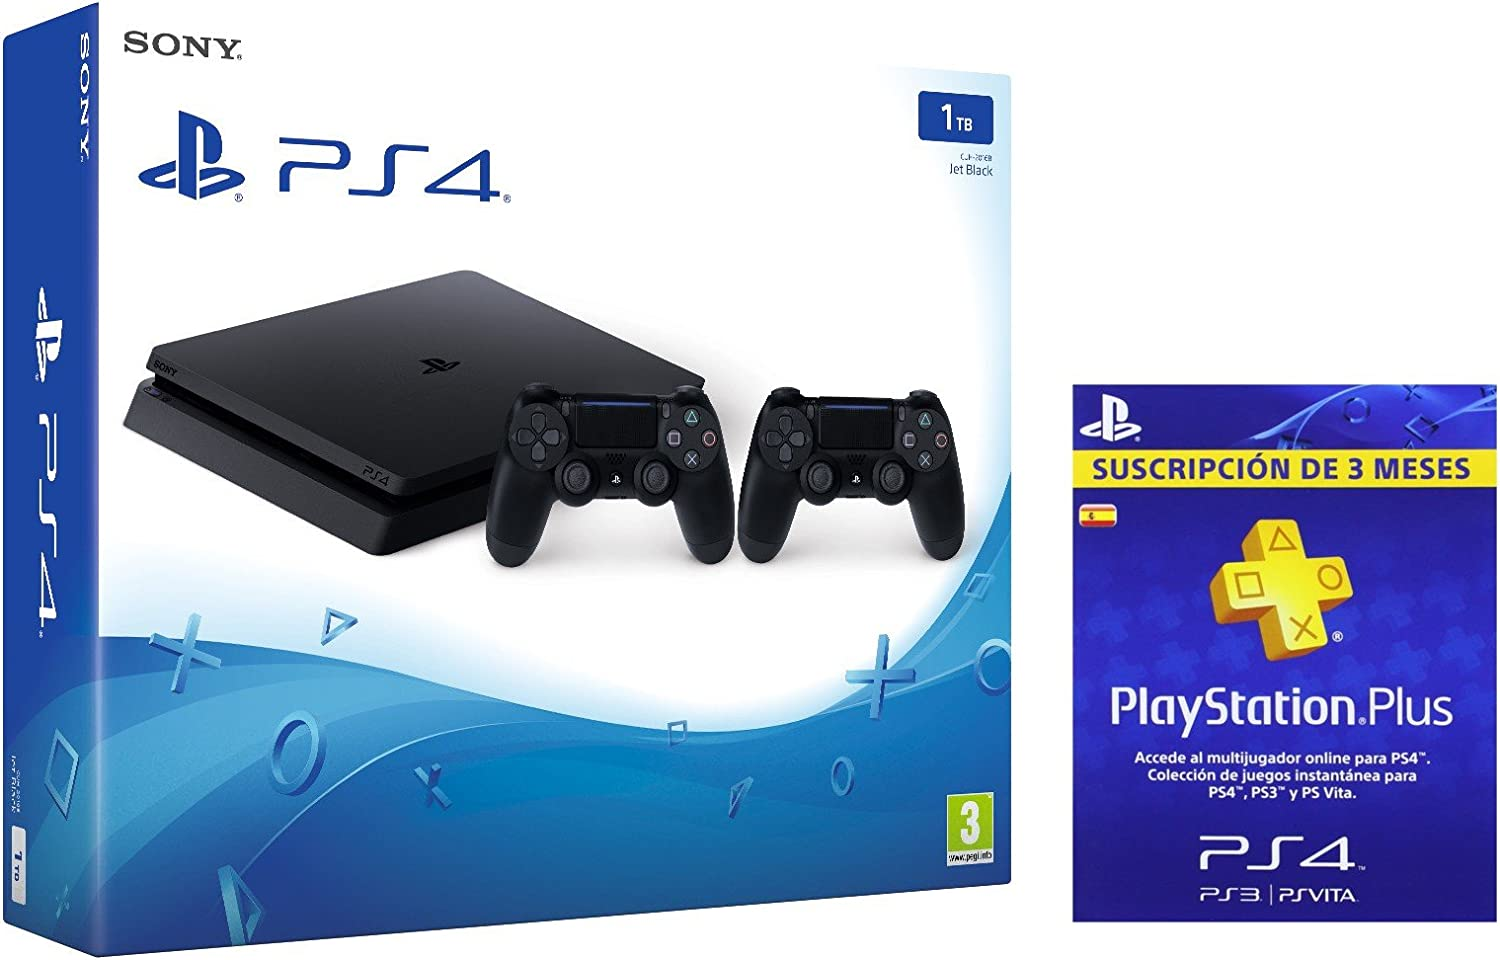 PlayStation 4 Slim (PS4) 1TB - Consola + 2 DualShock + PSN Plus ...